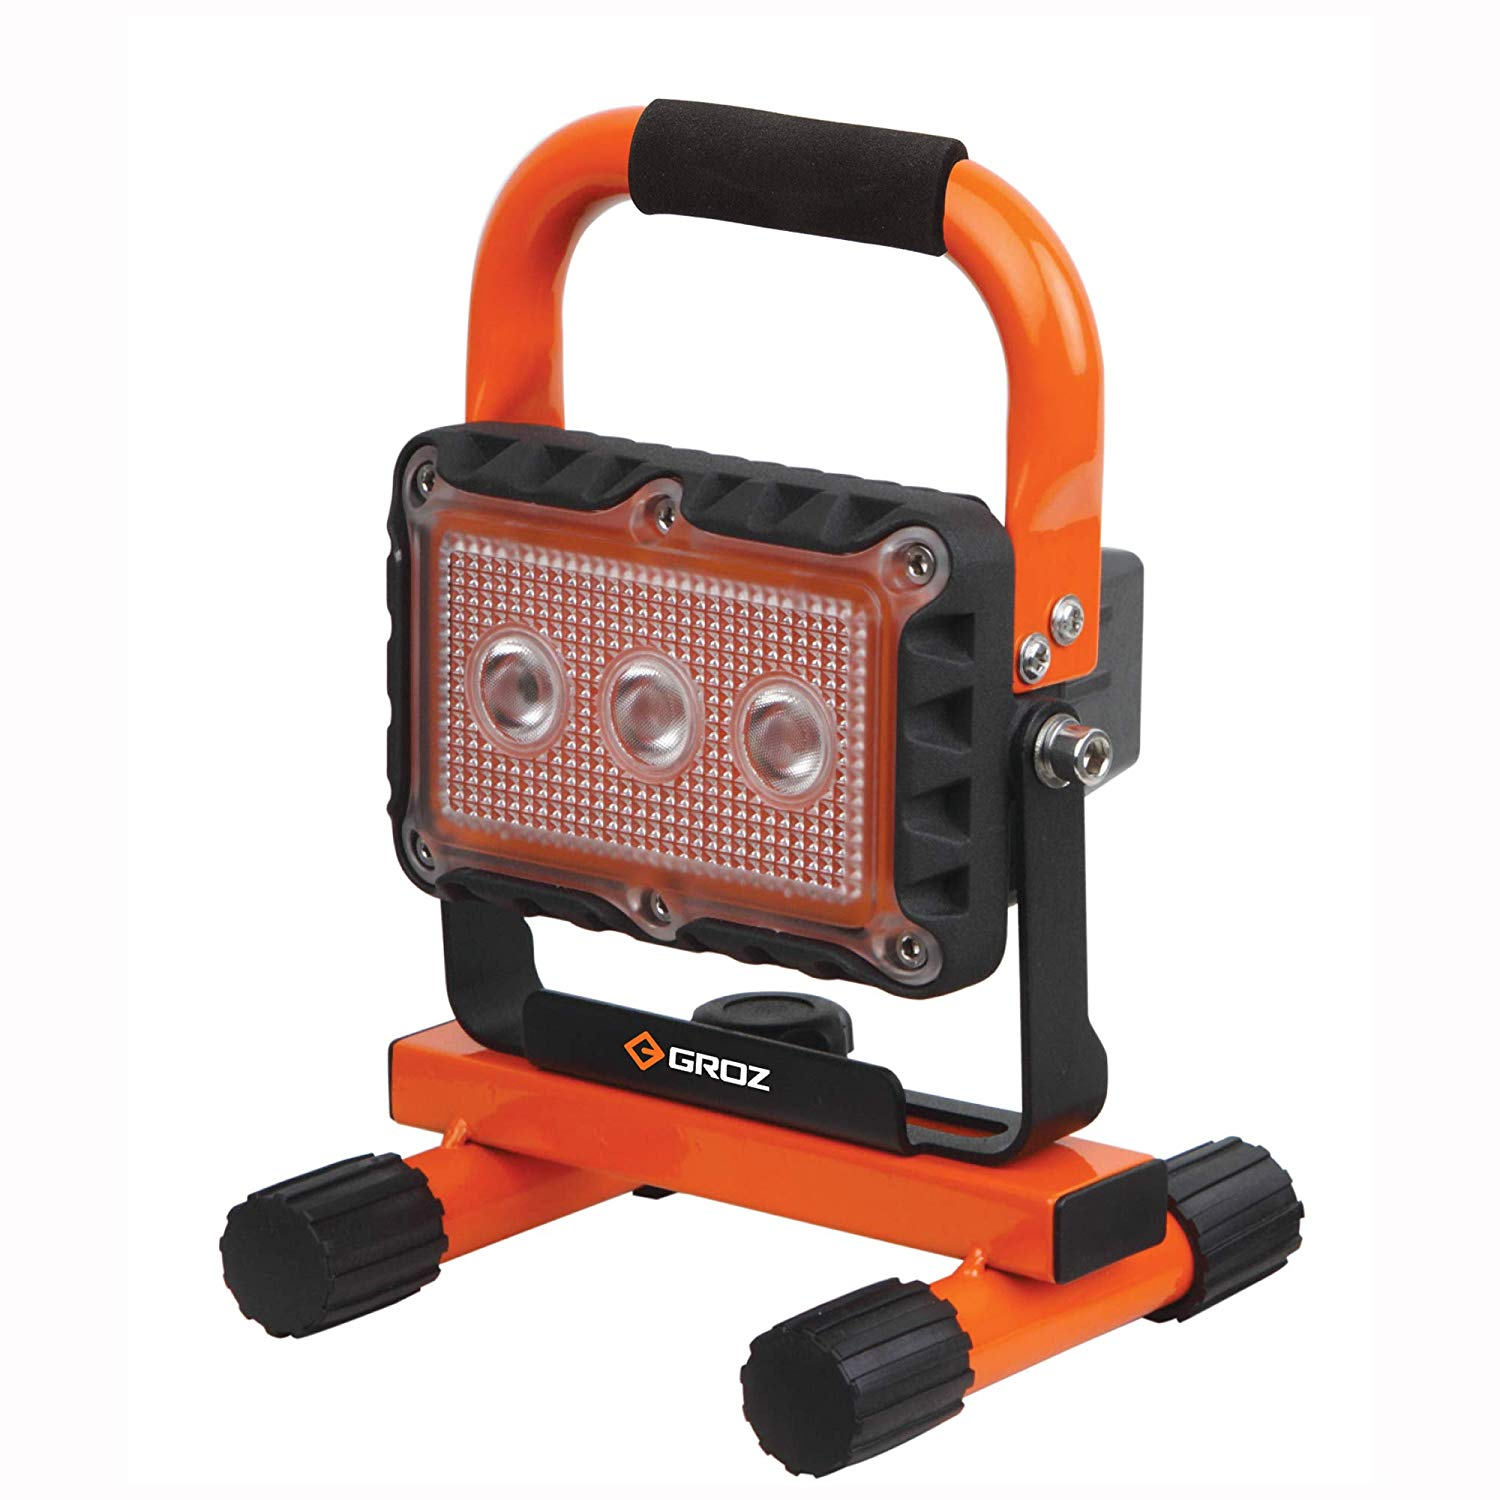 GROZ LED/650 - 9W USB Rechargeable Aluminium body Worklight, 500 Lumen, IP 65 Rated, Magnetic base